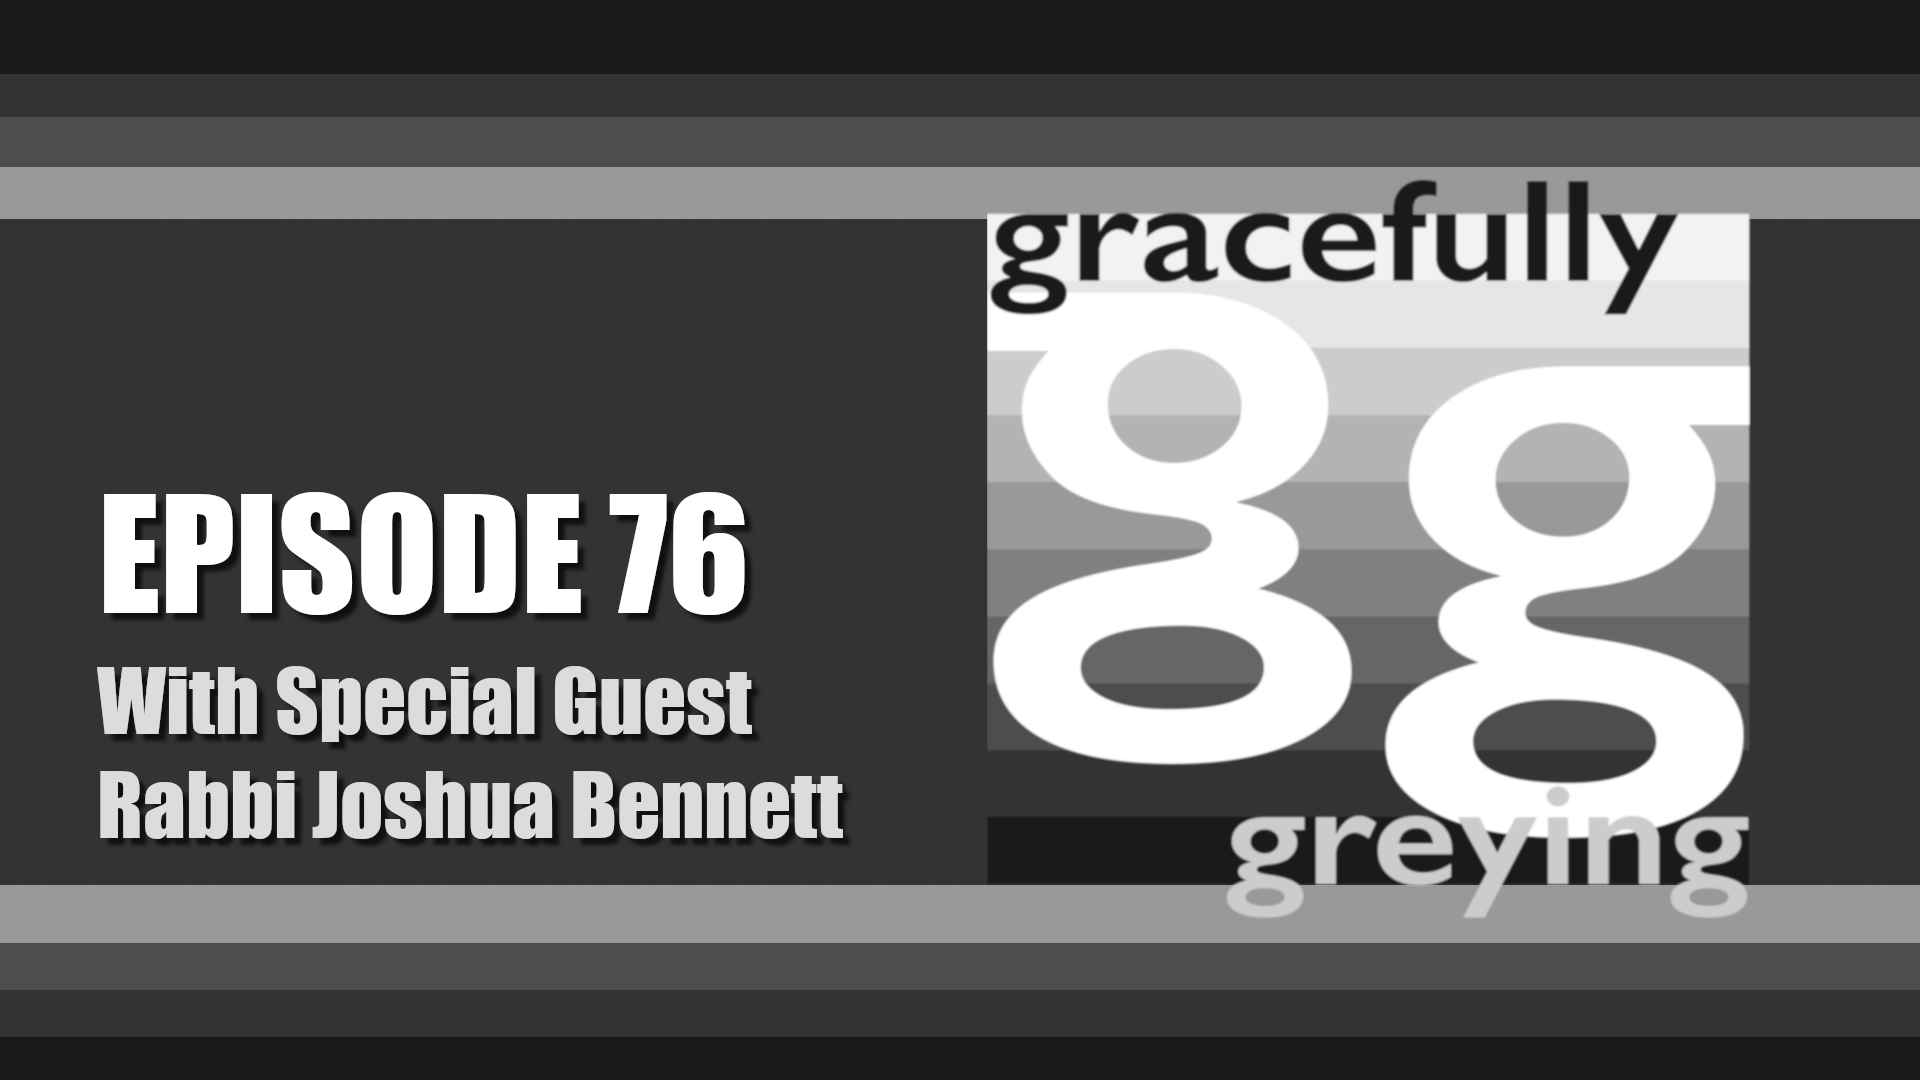 Gracefully Greying - Episode 76